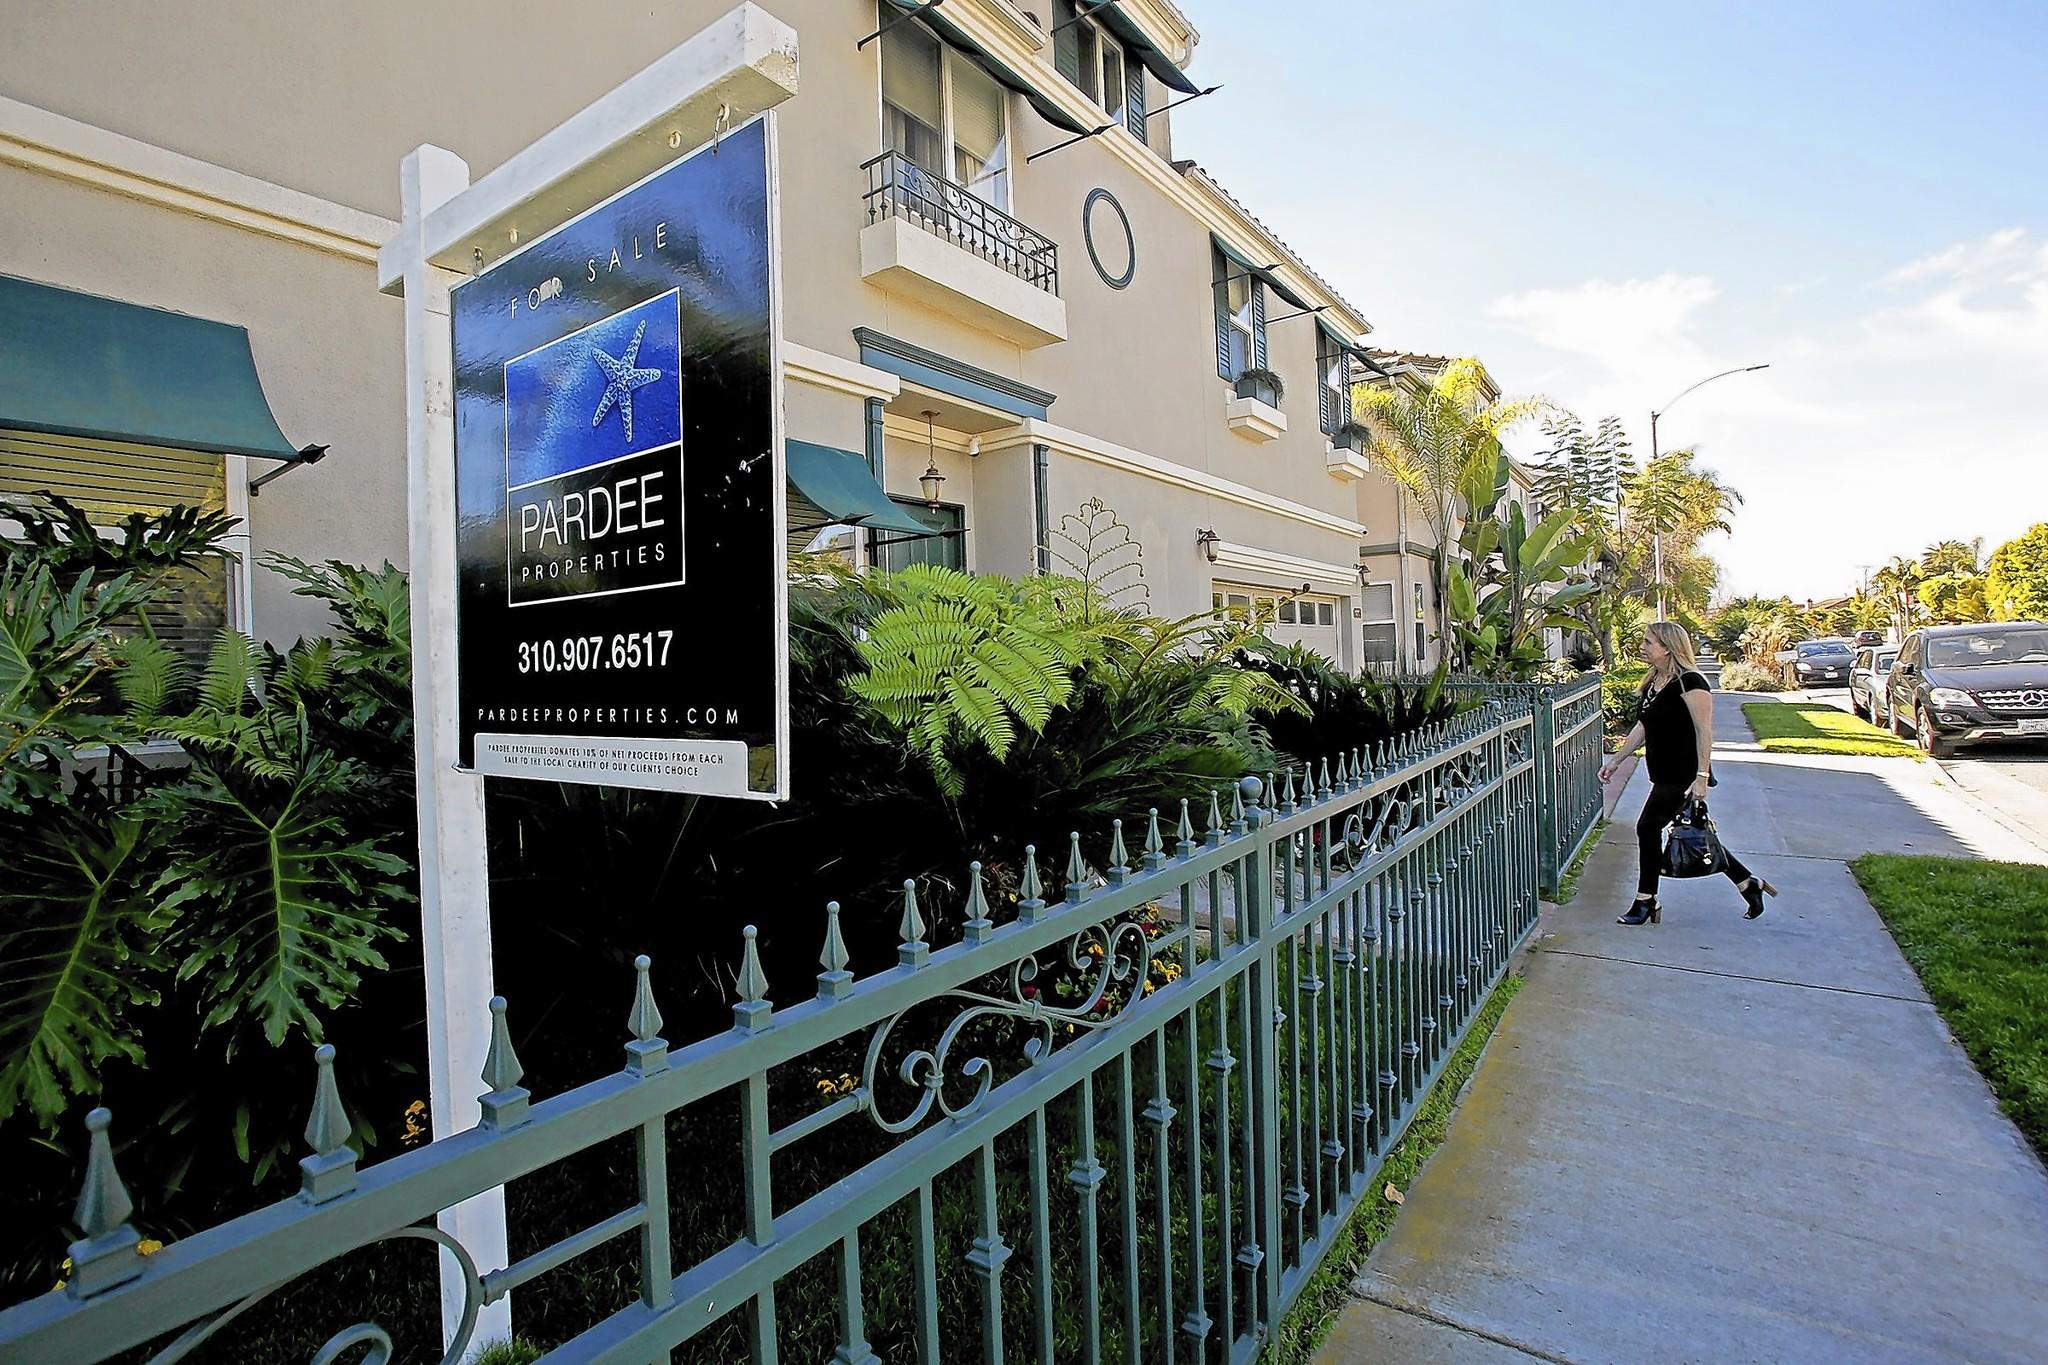 Housing costs in California have risen so high that they hurt recruitment, business groups say. Above, a home for sale in Venice in March.